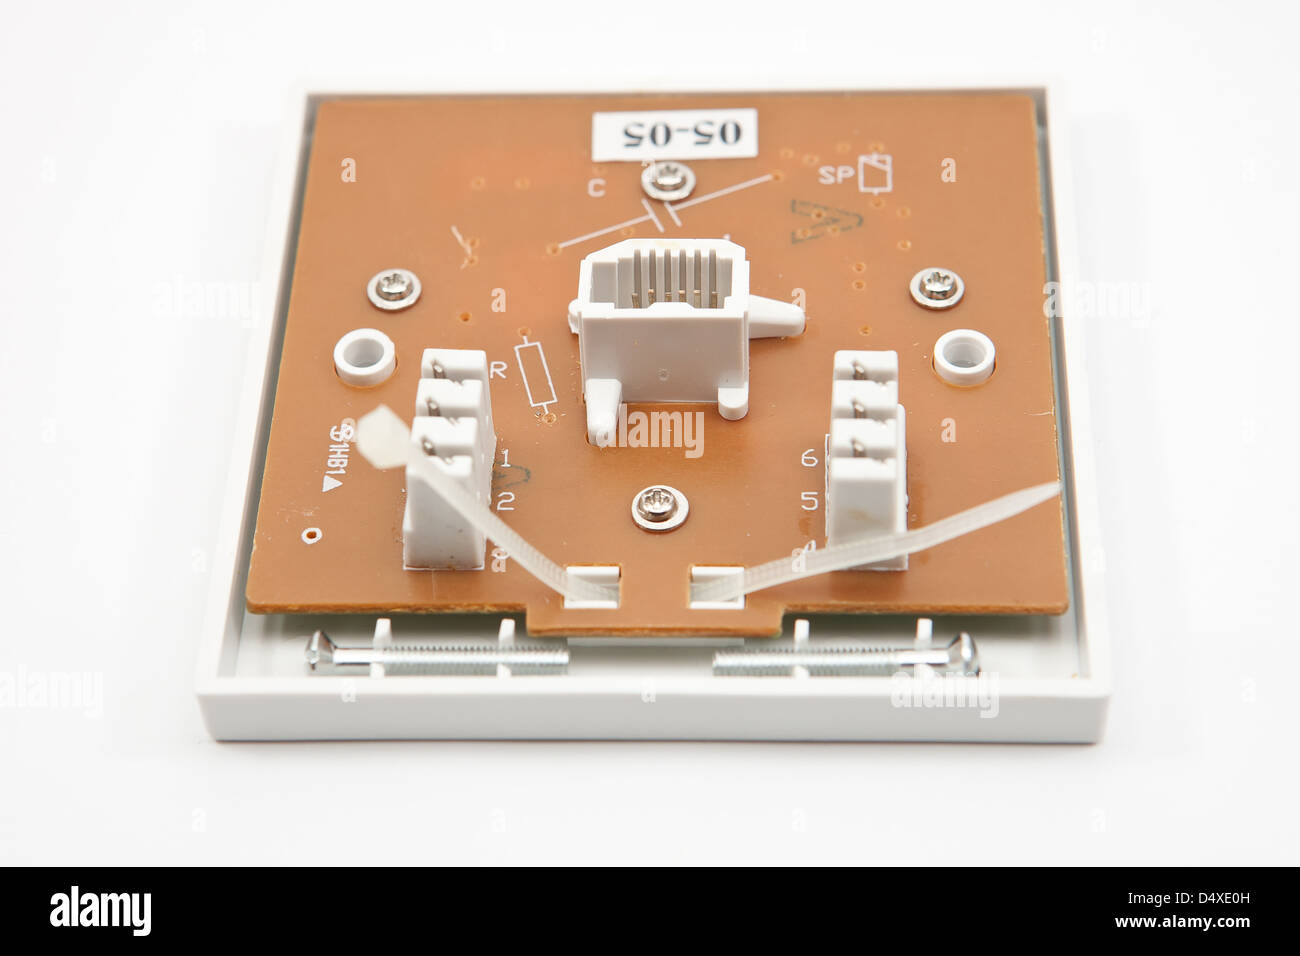 hight resolution of bt uk telephone wall socket wall plate connection box british telecom